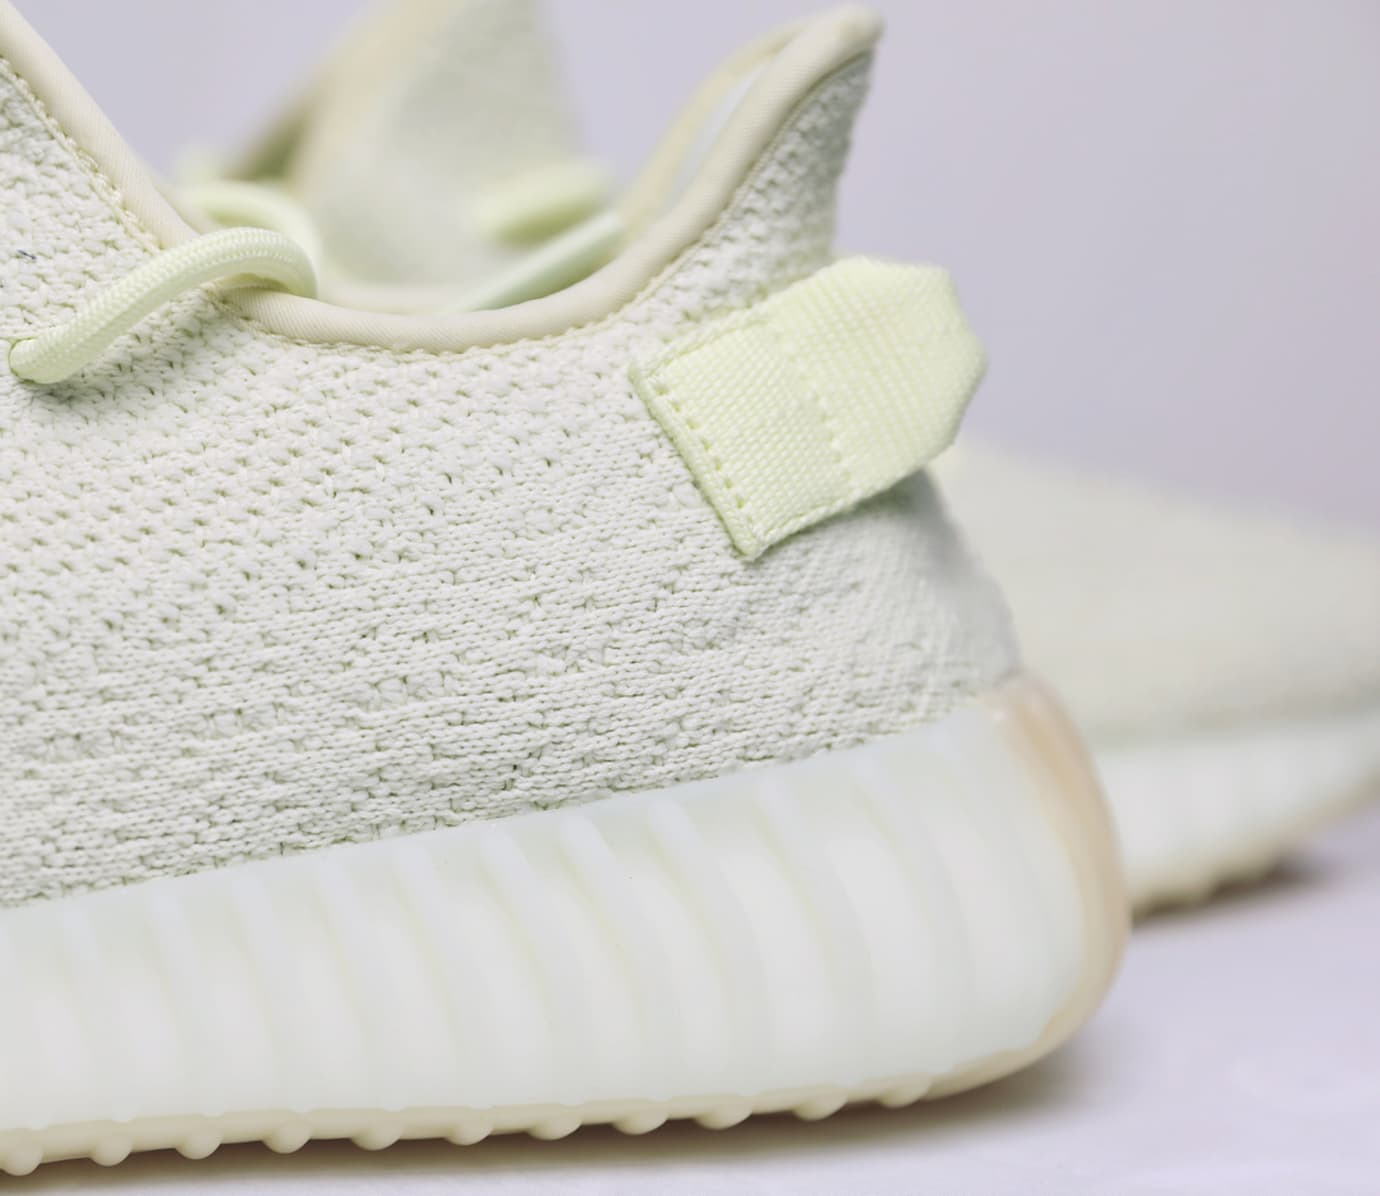 d80cd9860 ... Adidas Yeezy Boost 350 V2  Butter  (Back)